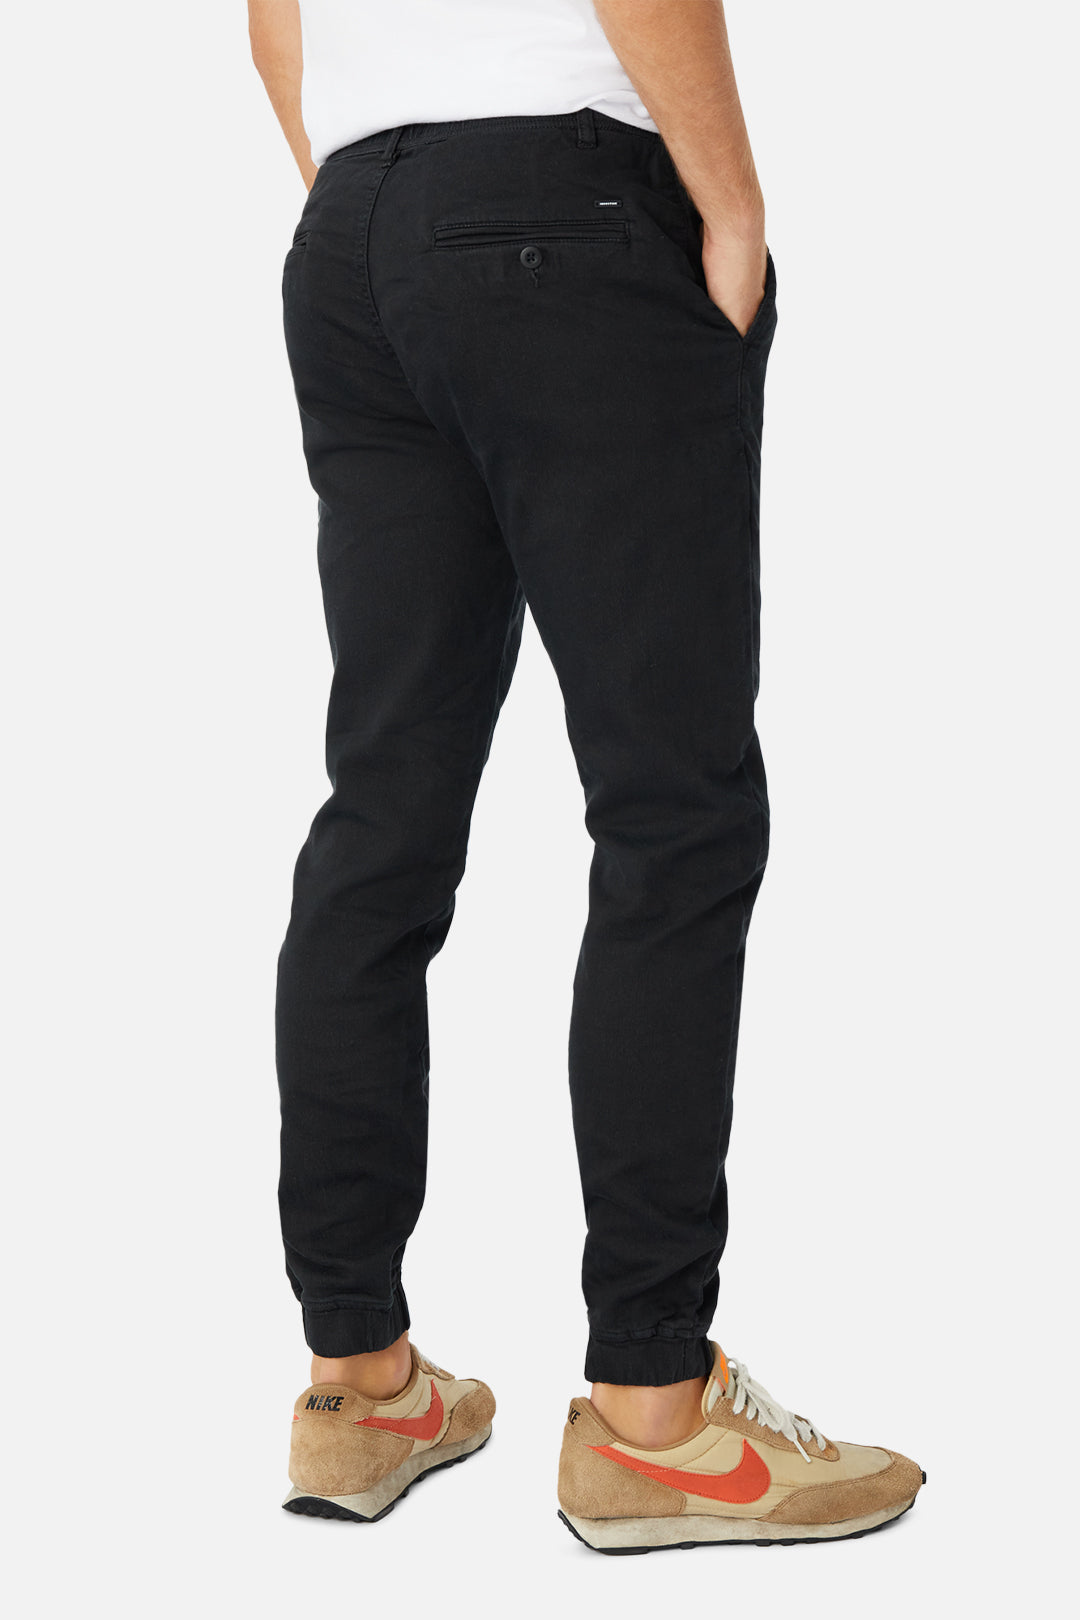 The Drifter Chino Pant - Spray Black